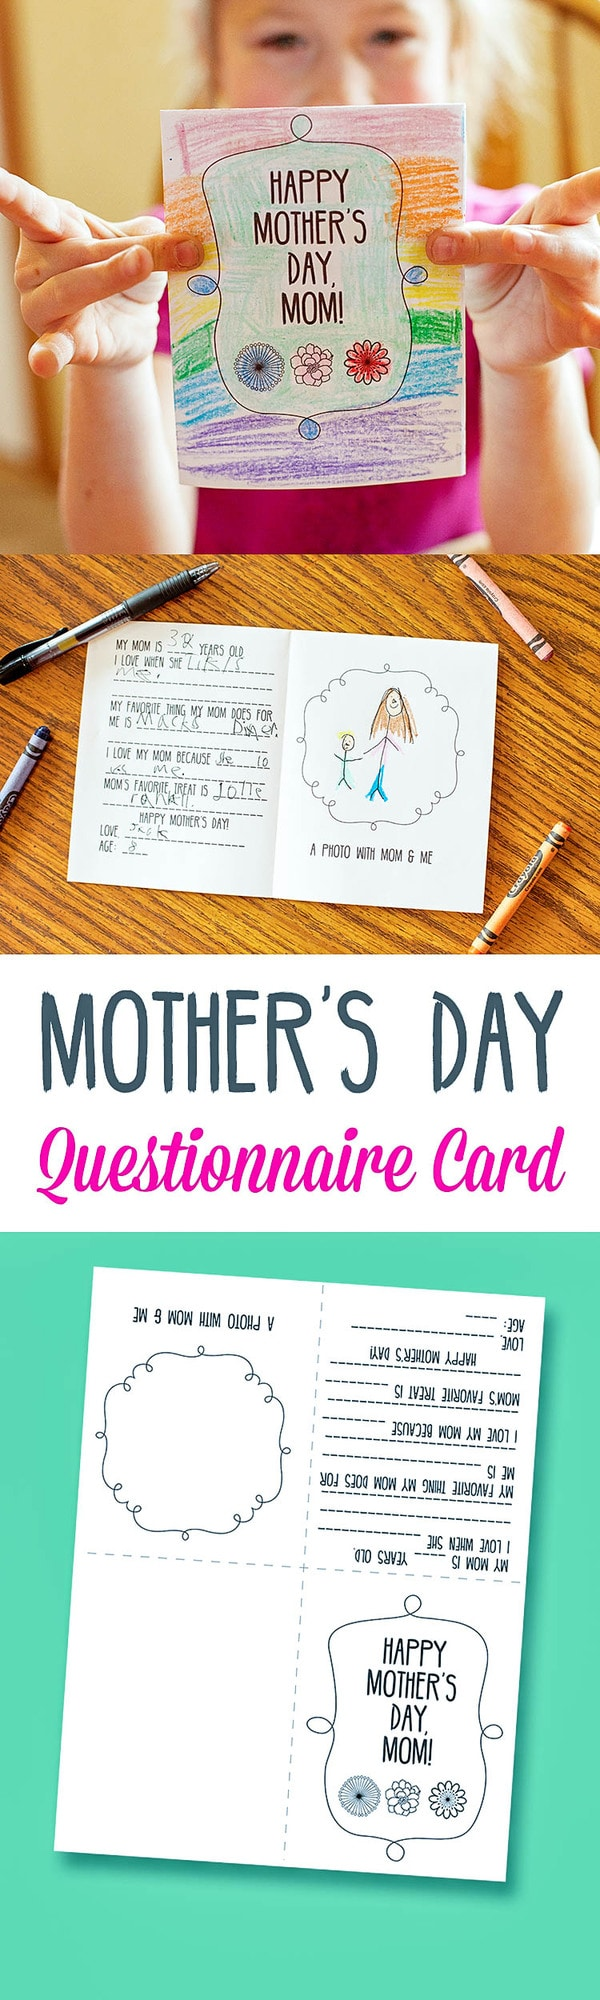 Free Mother's Day Questionnaire Card Print